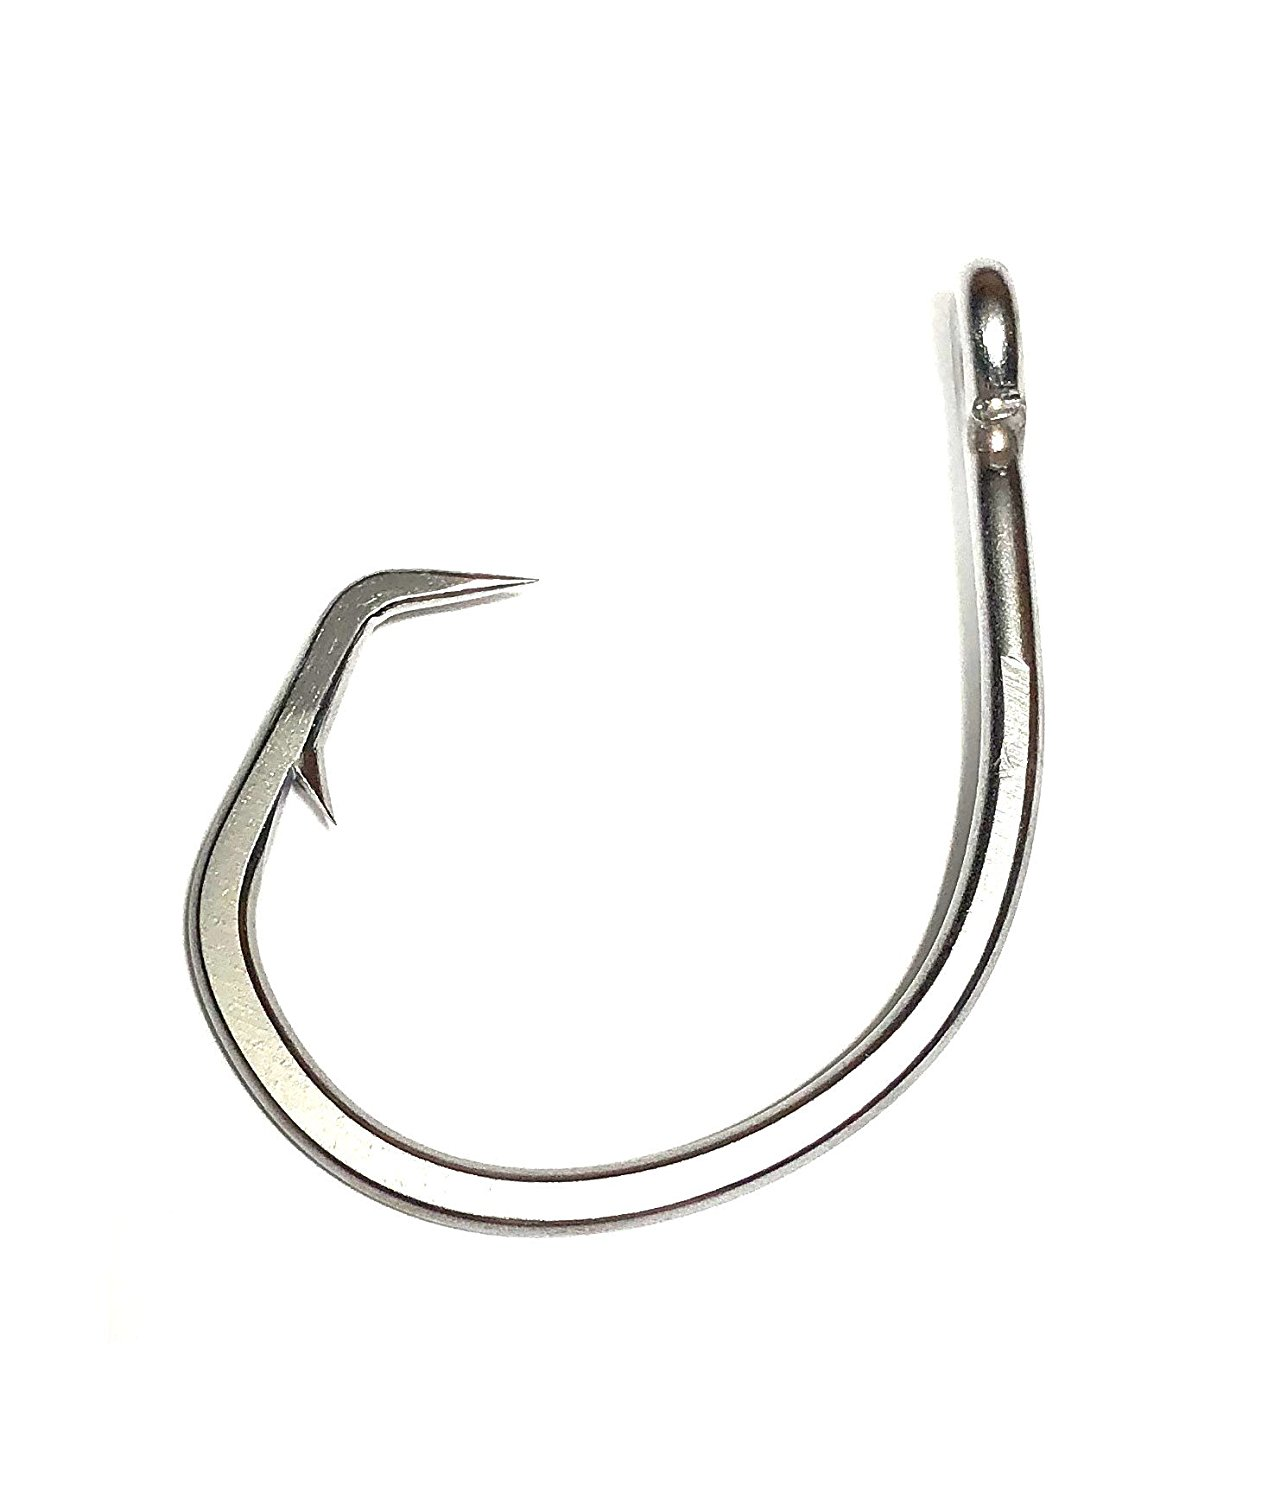 Riptail 96180F Forged Stainless Steel Circle Hooks